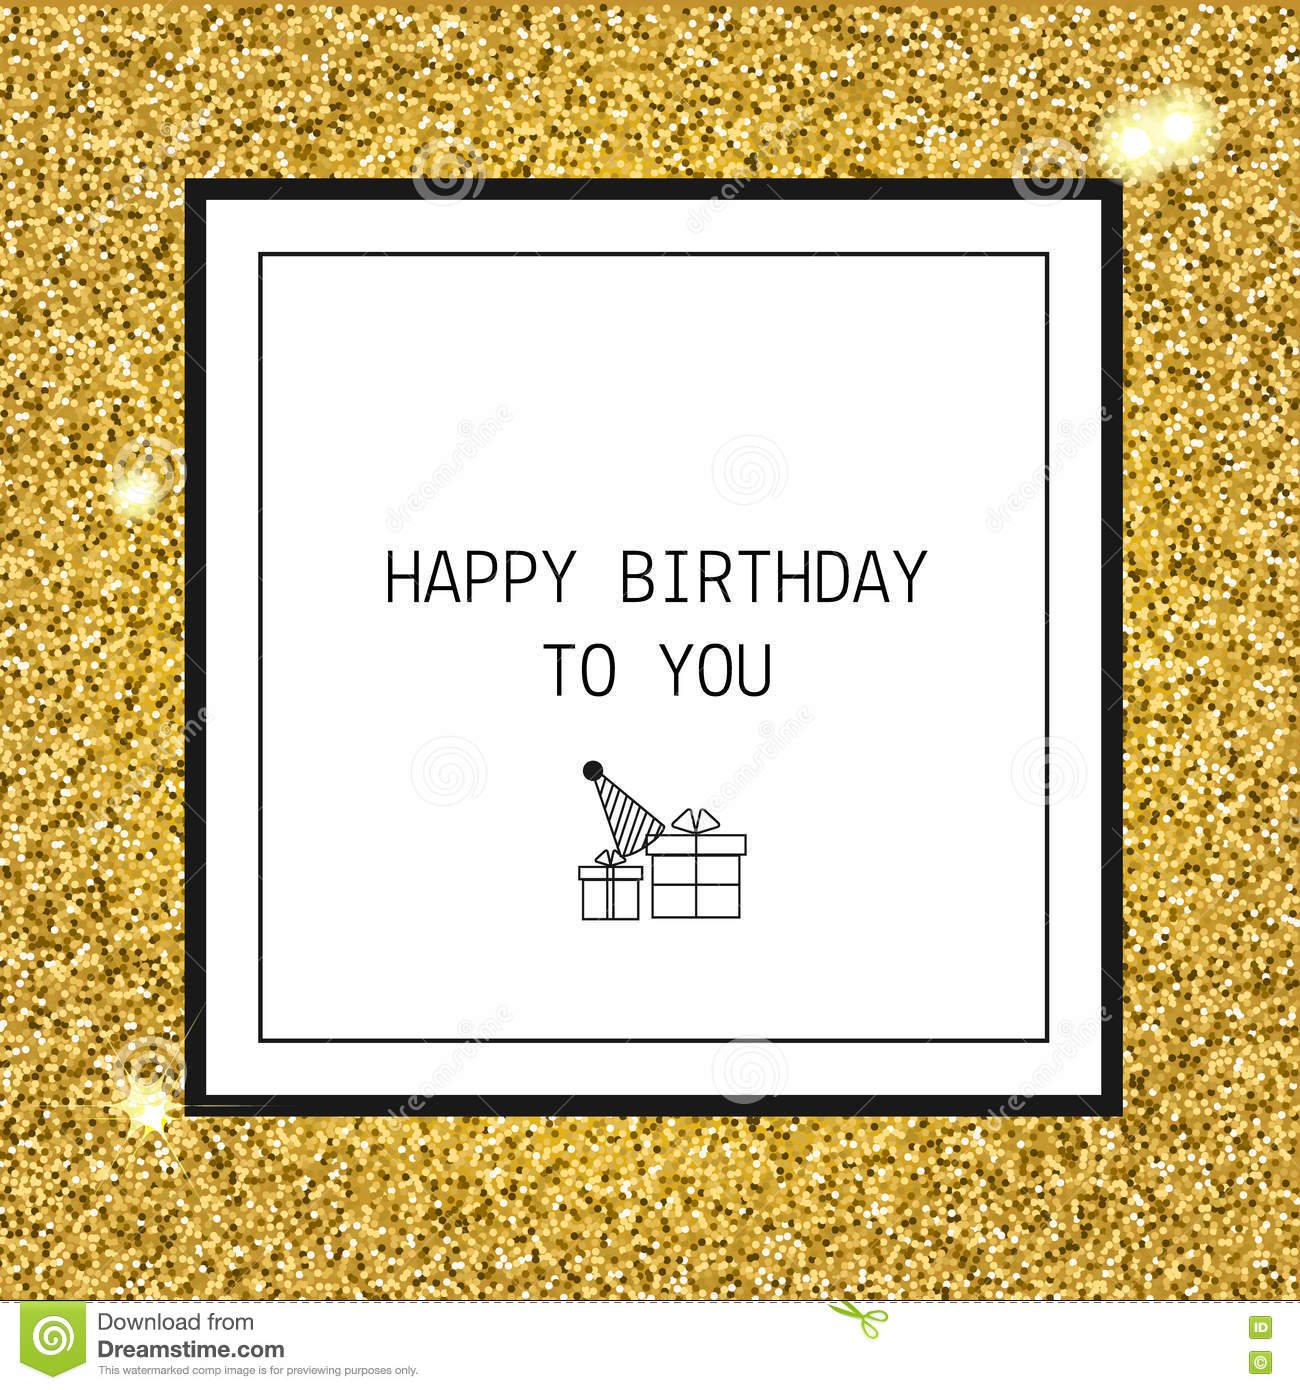 Happy Birthday Greeting Card With Ribbons And Line Icons Stock